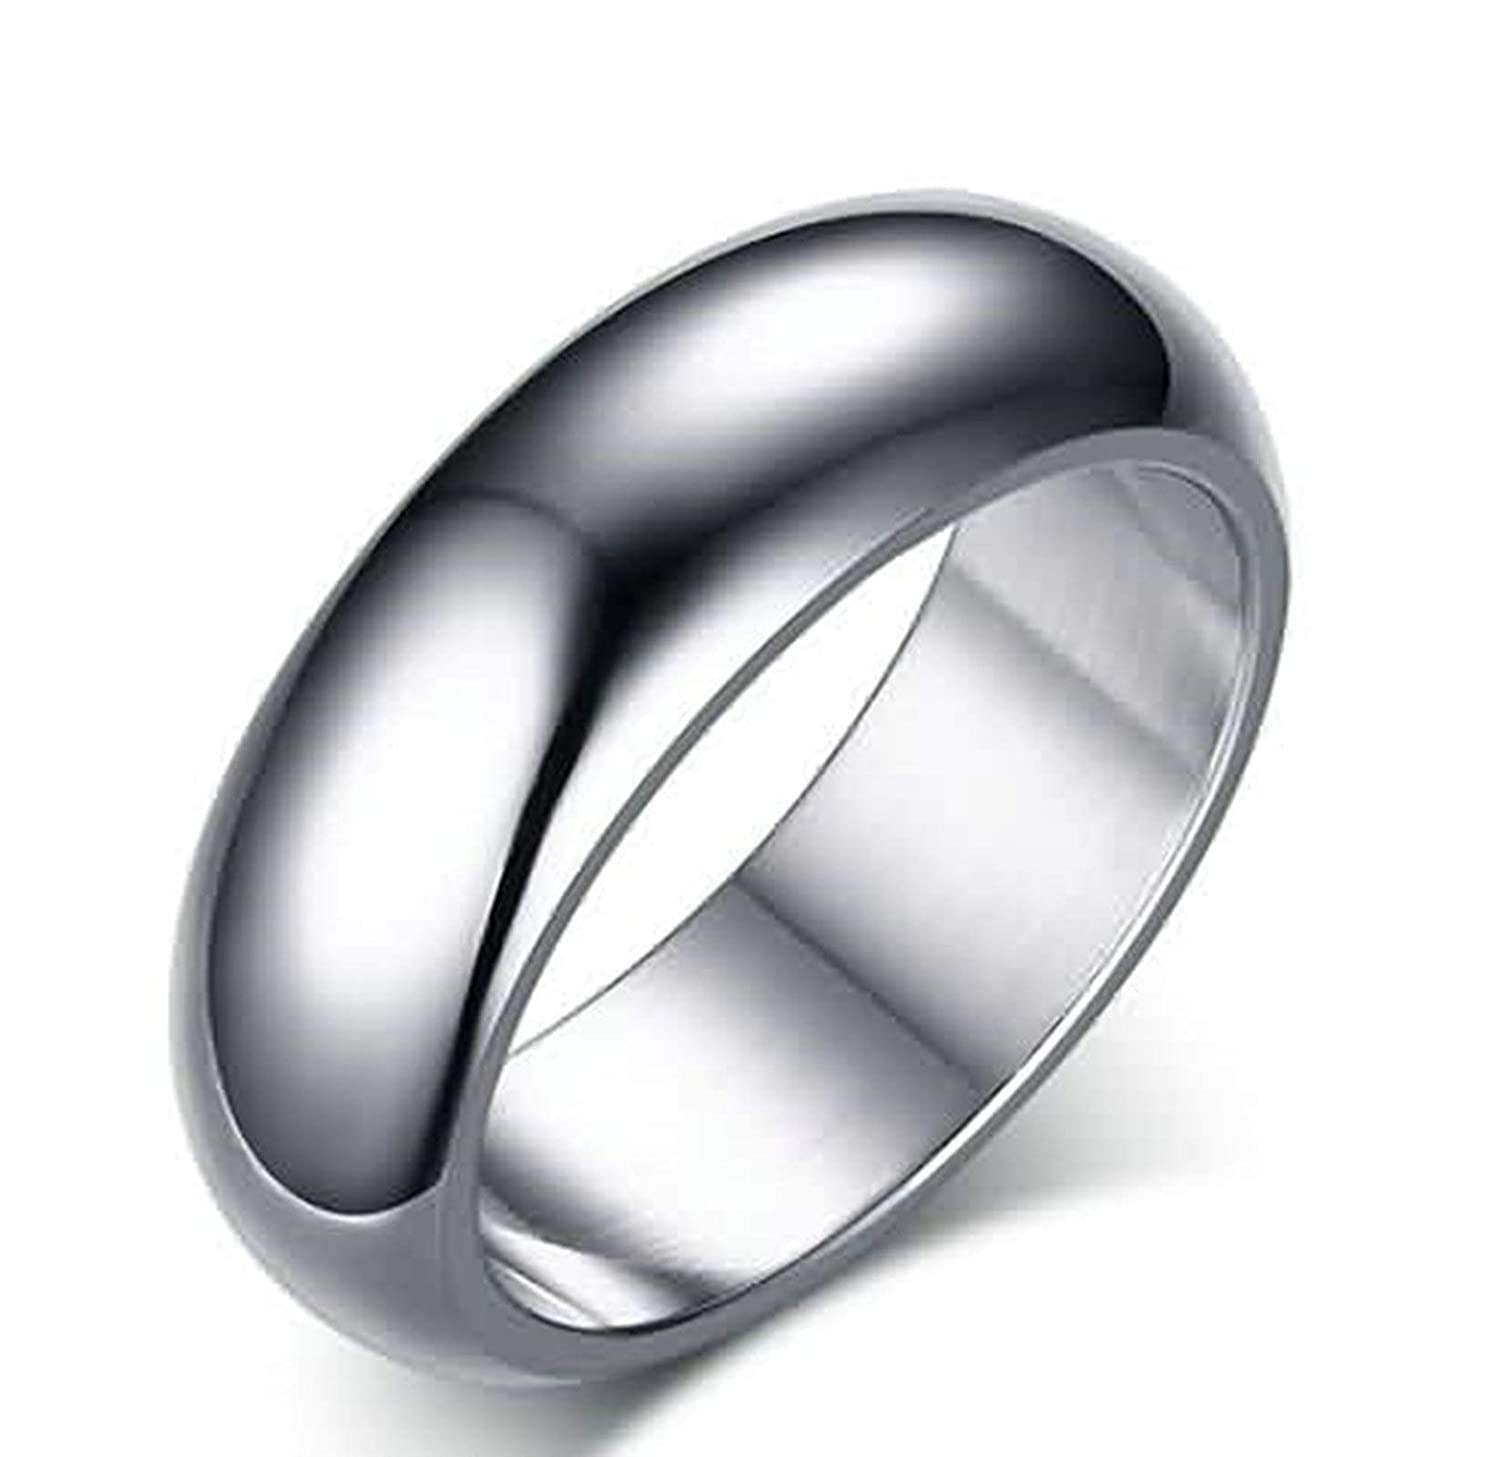 Epinki Ring Engagement Band Jewelry Stainless Steel Rings for Men Promise Ring High Polished Ring